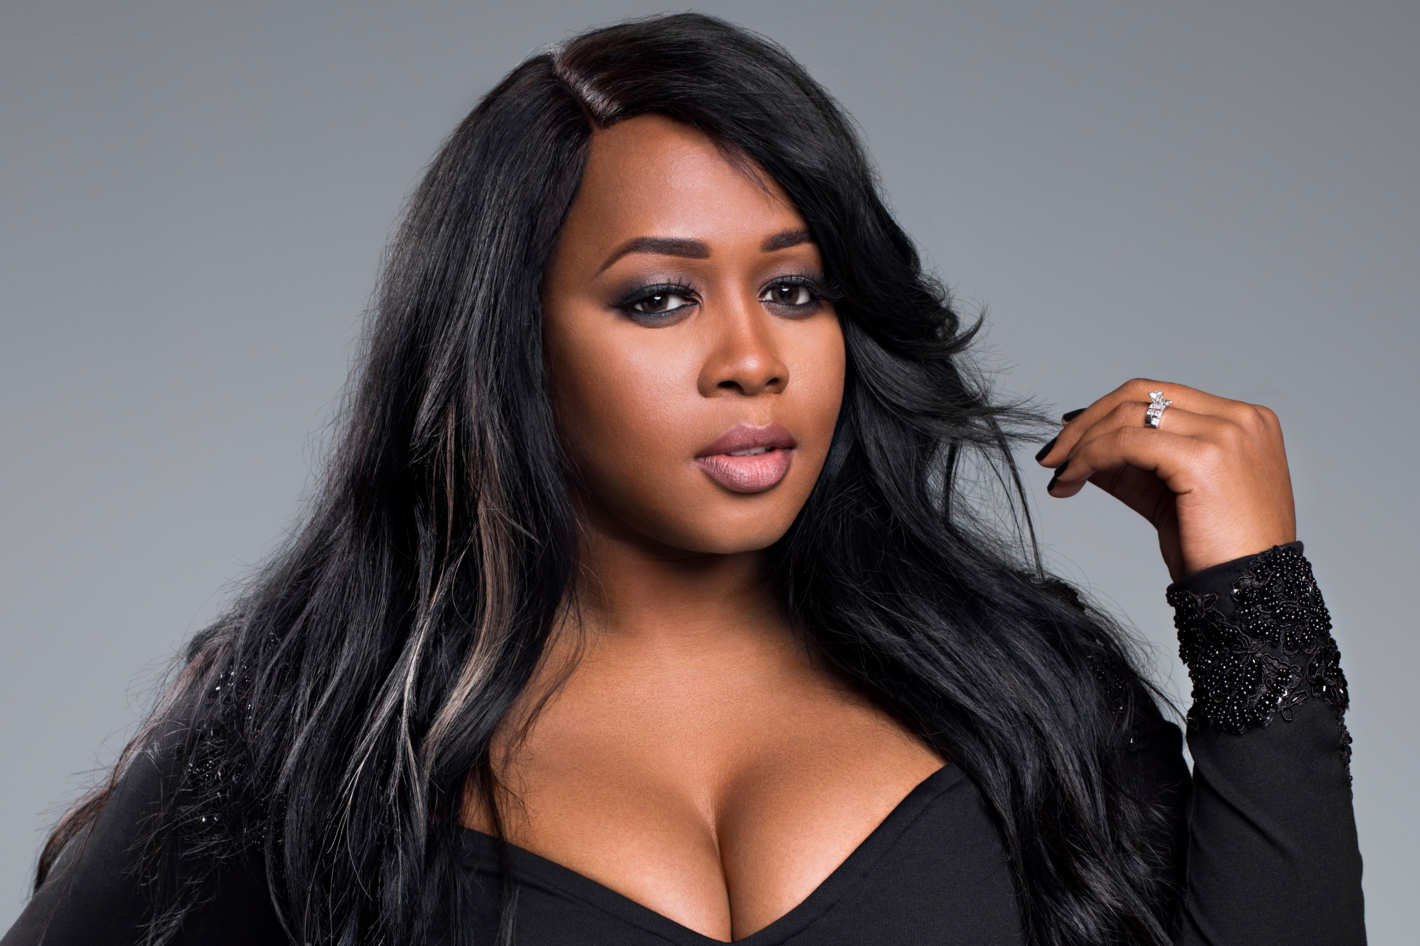 Is This Video the Reason Remy Ma Could Be Joe Budden's Co-Host?